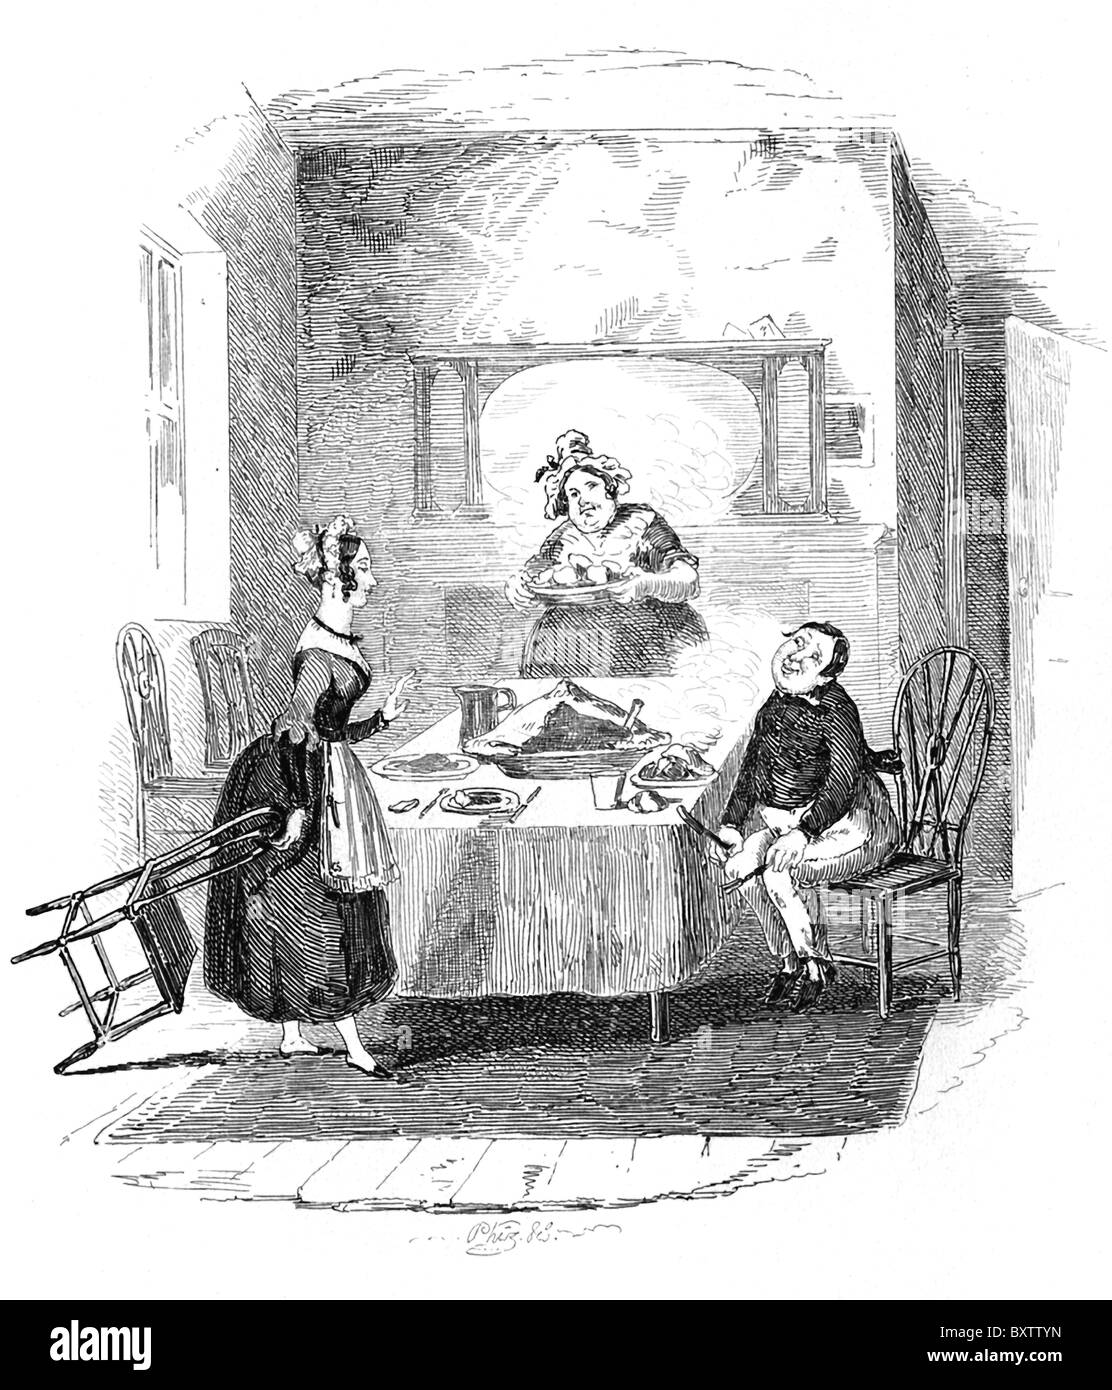 Note the name'Phiz' underneath this illustration of Browne titled 'Mary and the Fat Boy.' - Stock Image